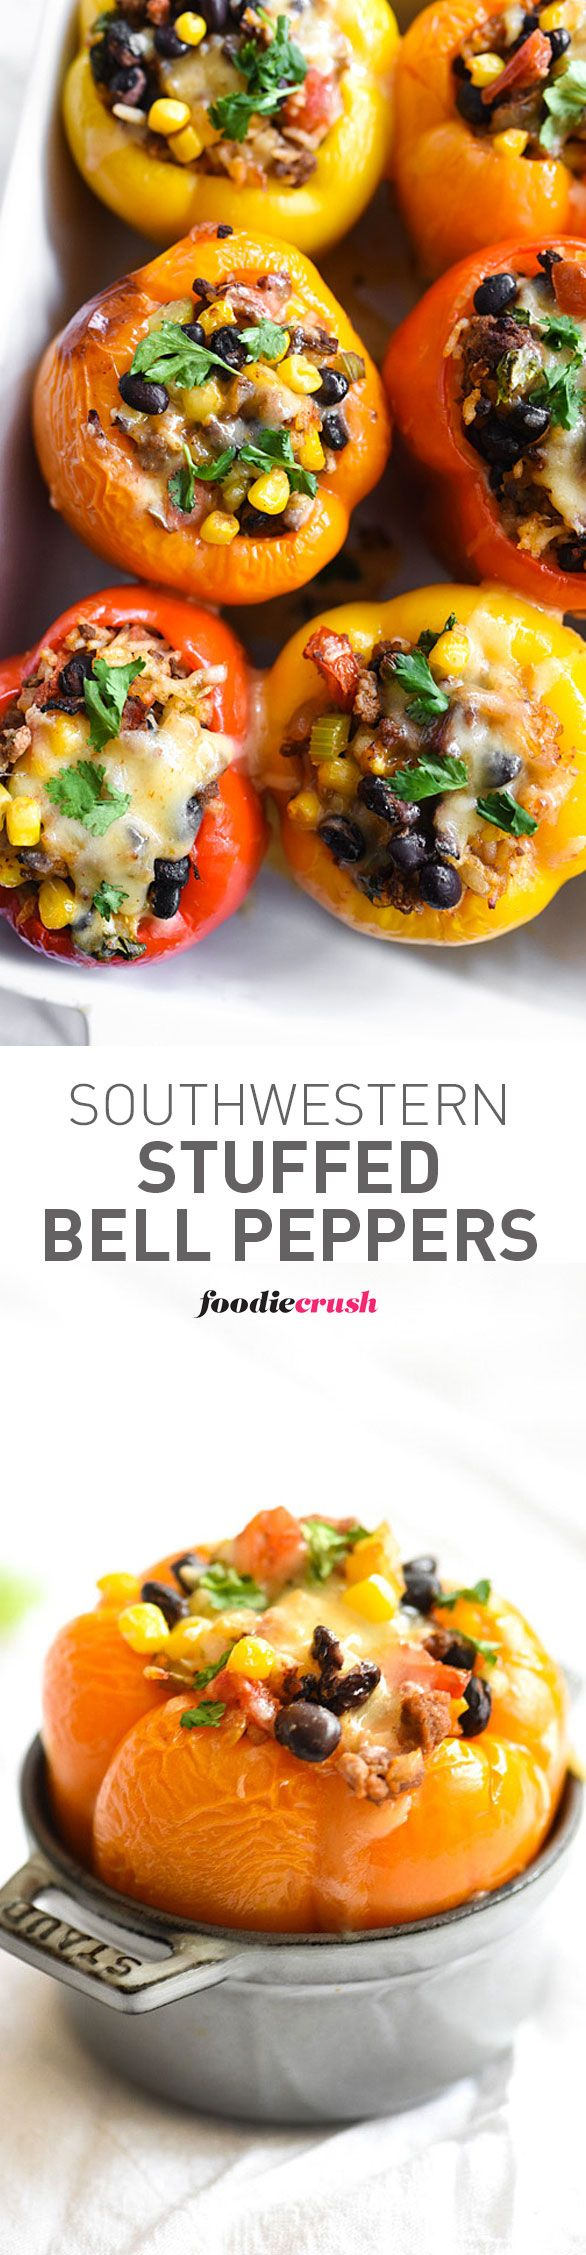 Multi-color peppers make the Southwest flavors of this recipe a healthy family favorite dinner | foodiecrush.com